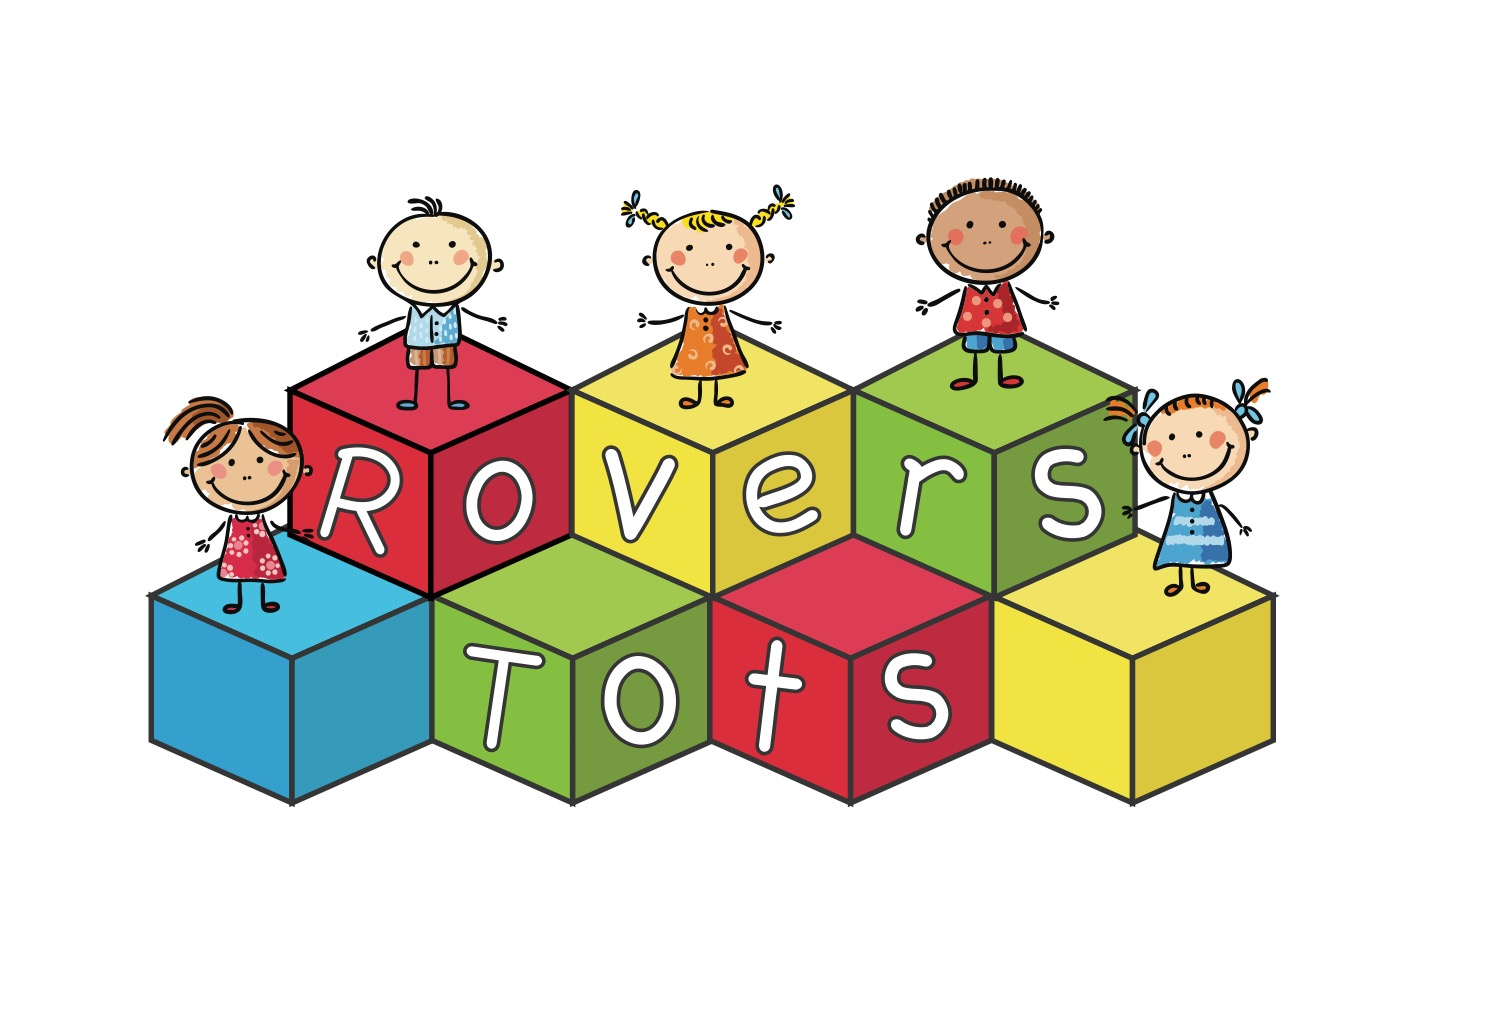 Rovers Tots